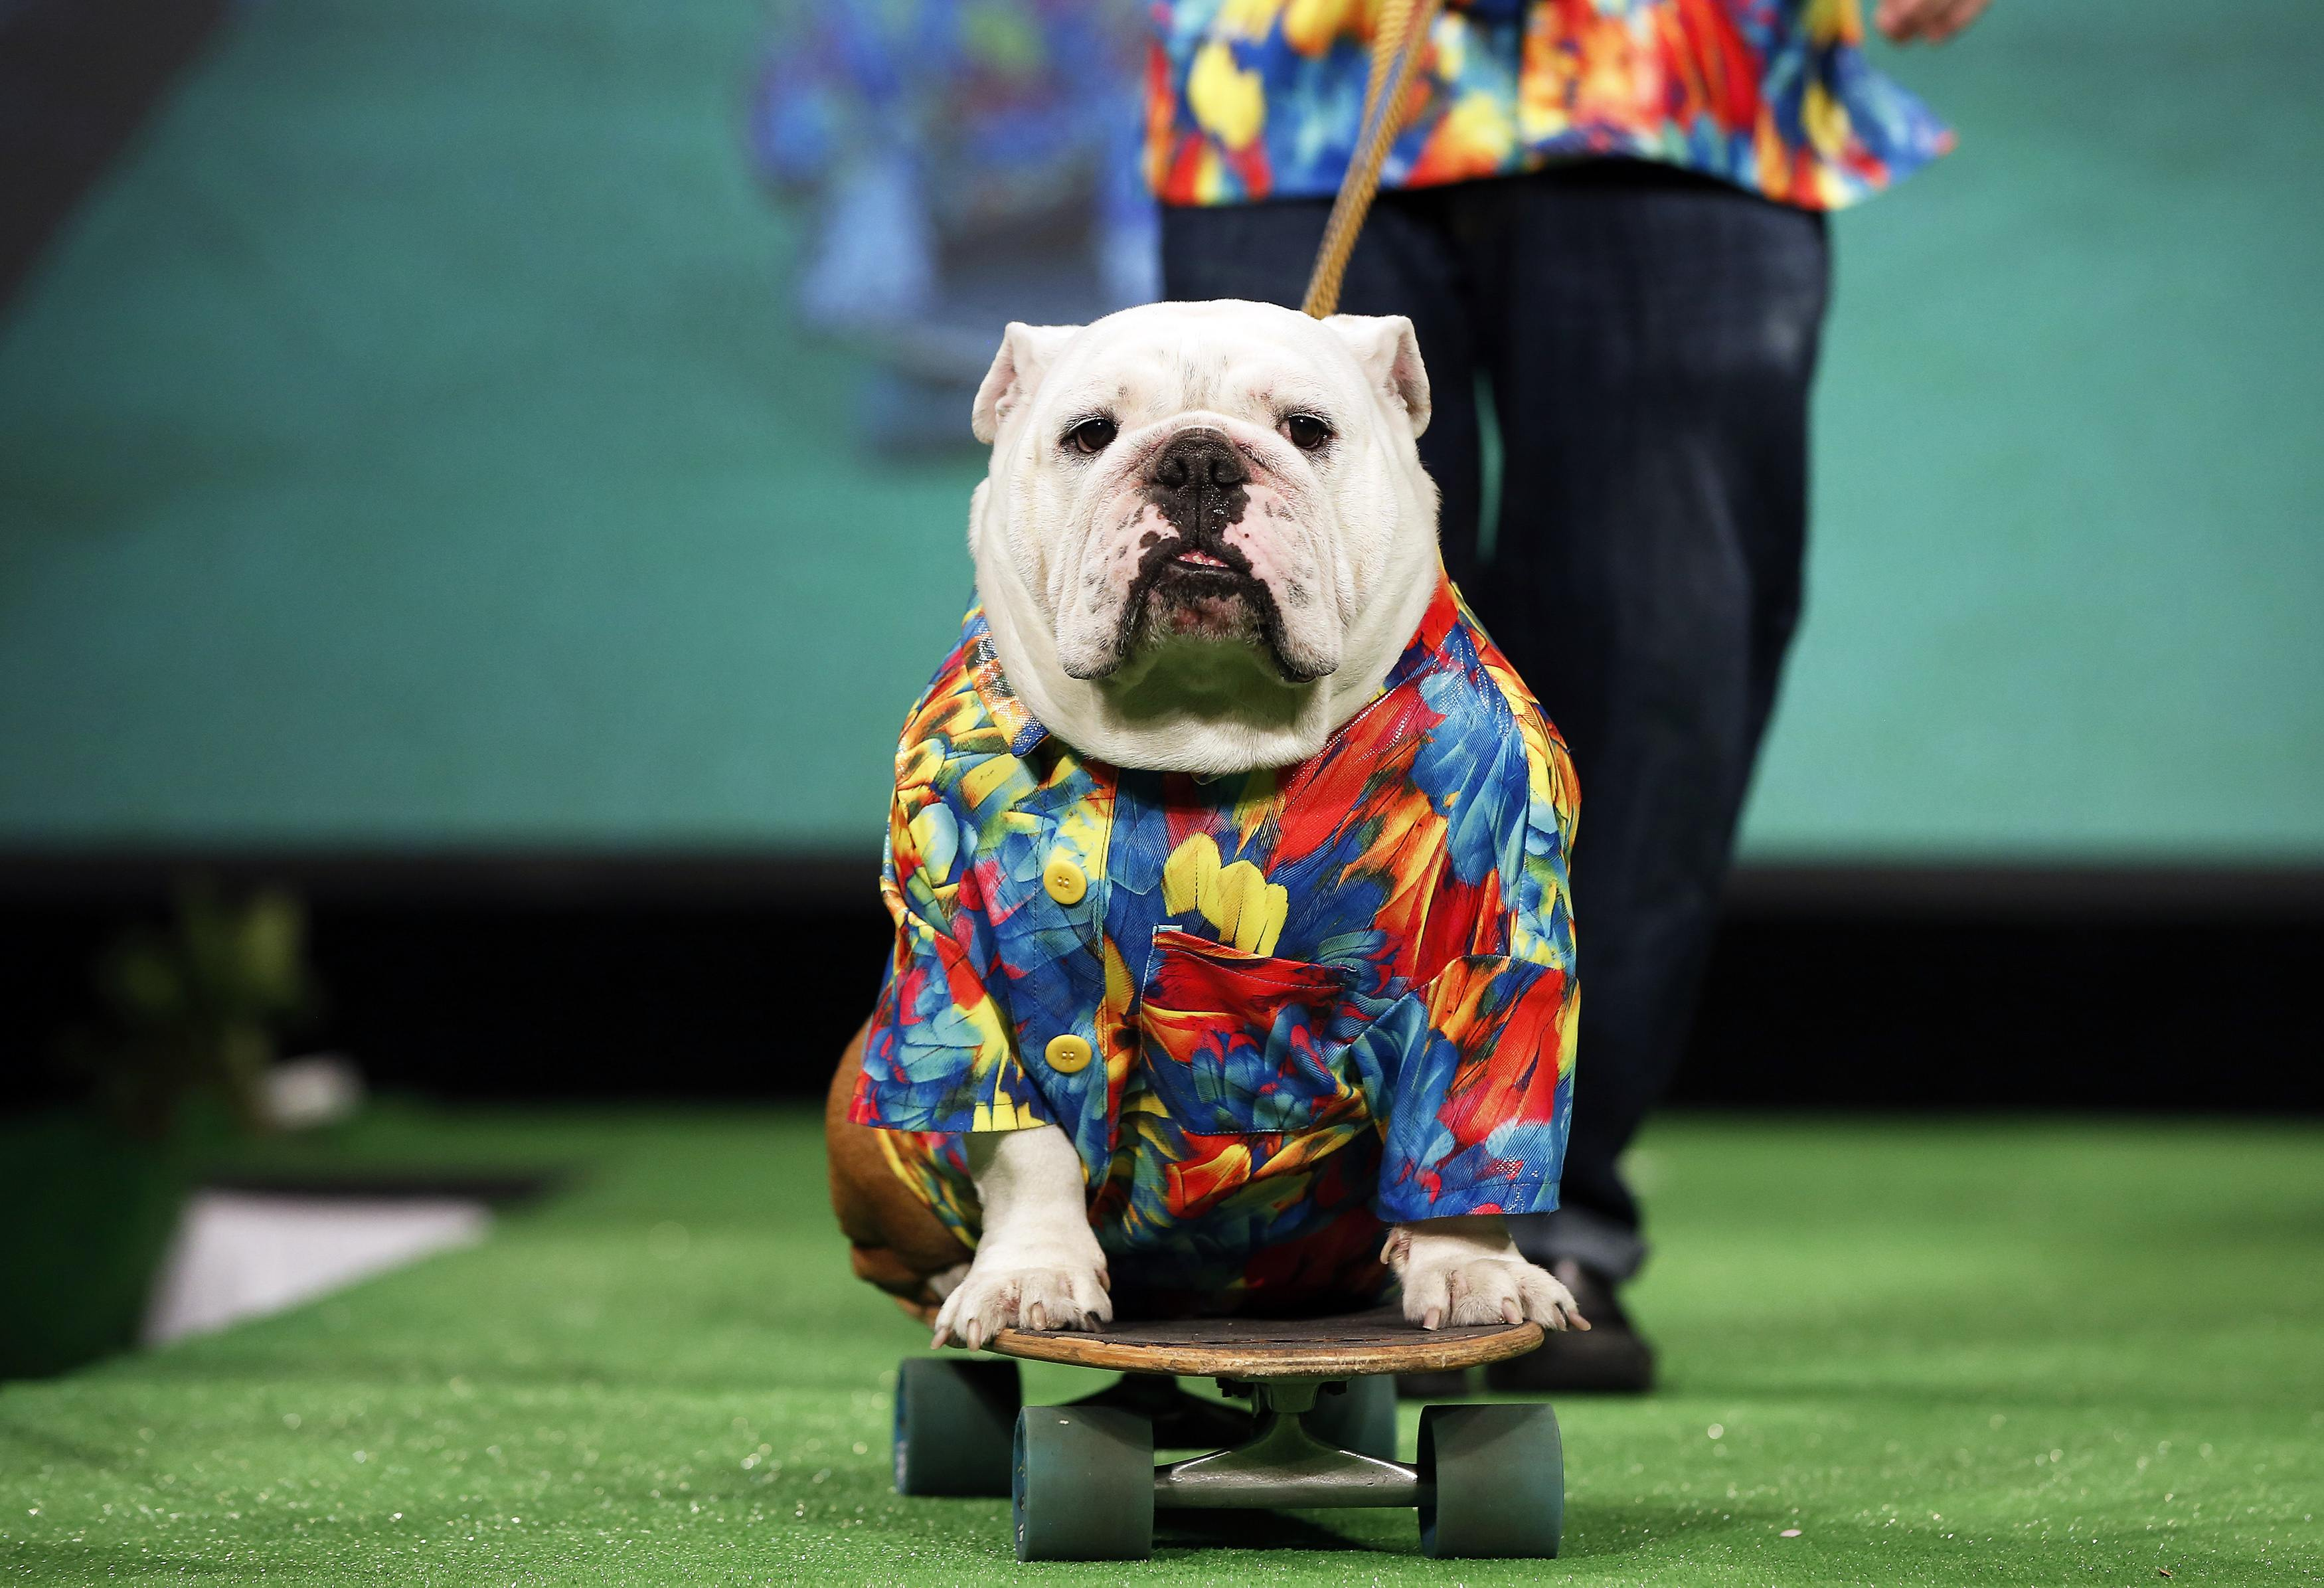 Beefy, a Bulldog breed, rides on a skateboard pulled by his owner Patrick Clemens on the runway of the New Yorkie Runway Doggie Fashion Show in New York. ? Reuters Photo